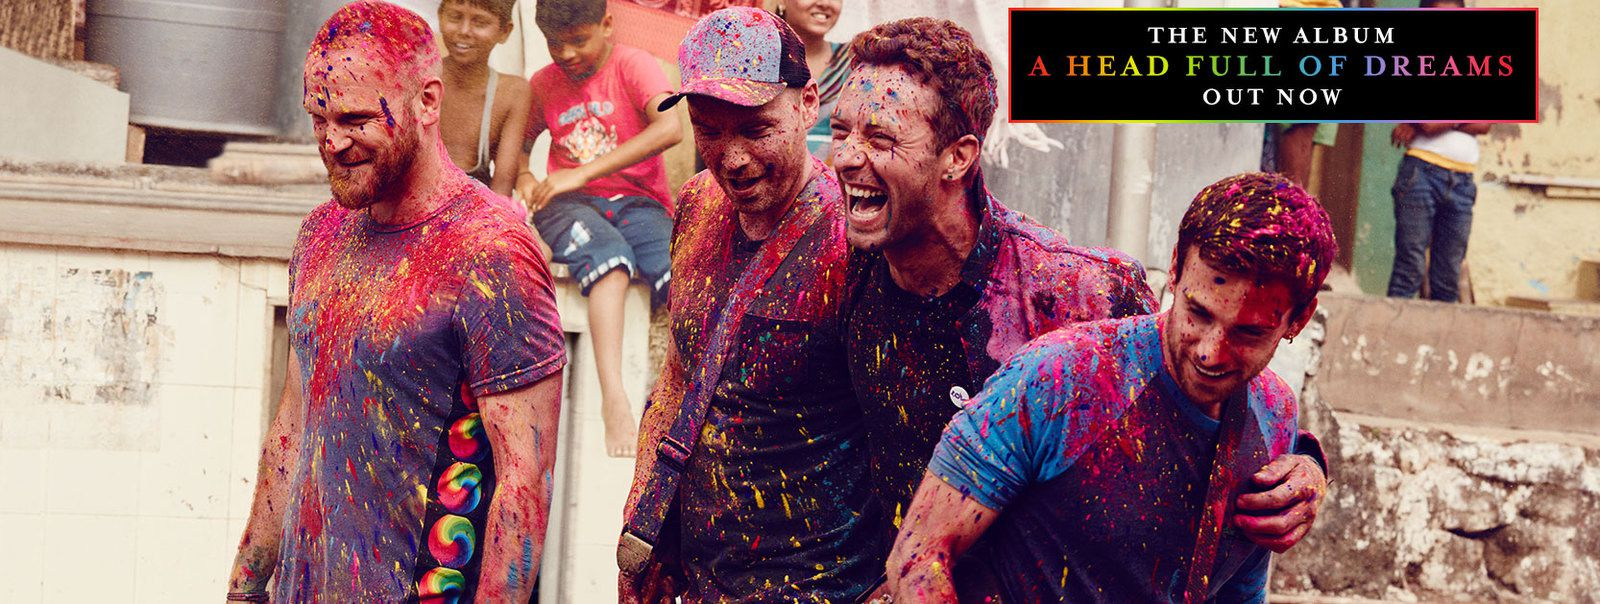 &quot&#x3B;Hymn for the weekend&quot&#x3B; de Coldplay